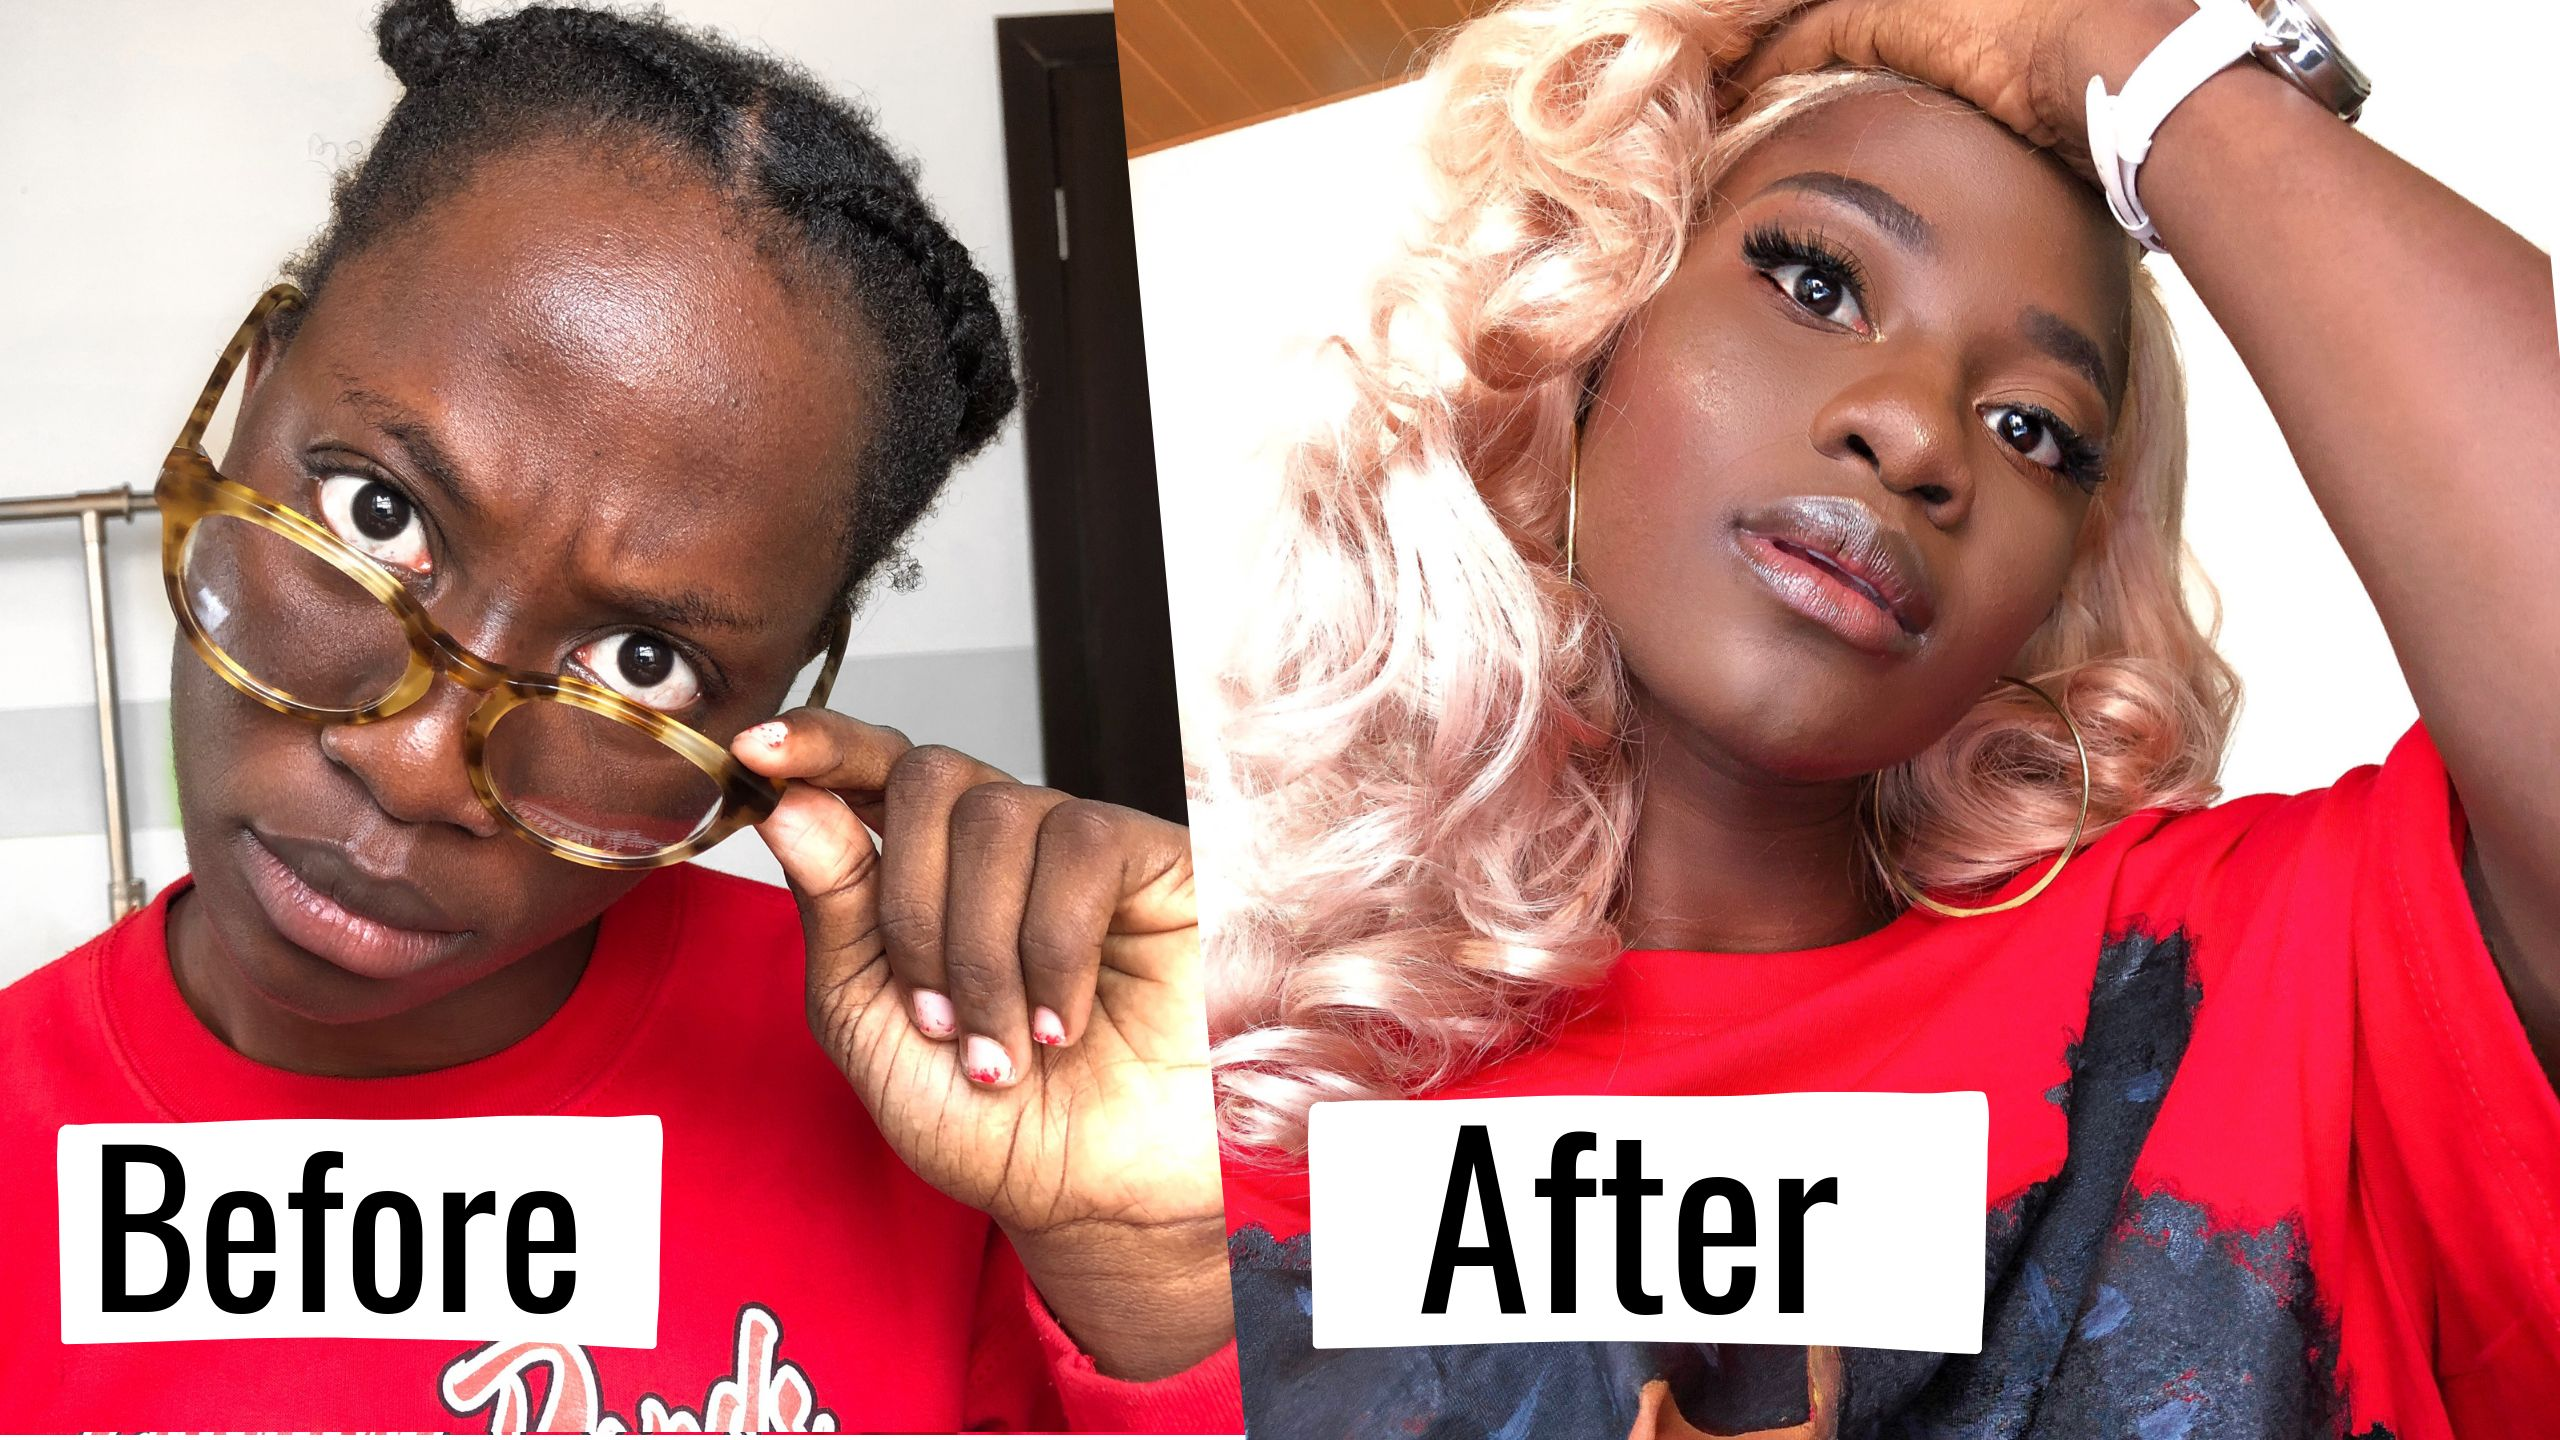 New Year New Me 24 Hour Transformation Extreme Glow Up Challenge 2019 Ft Alipearl Hair Youtube Extreme Glow Instagram Makeup New Year New Me